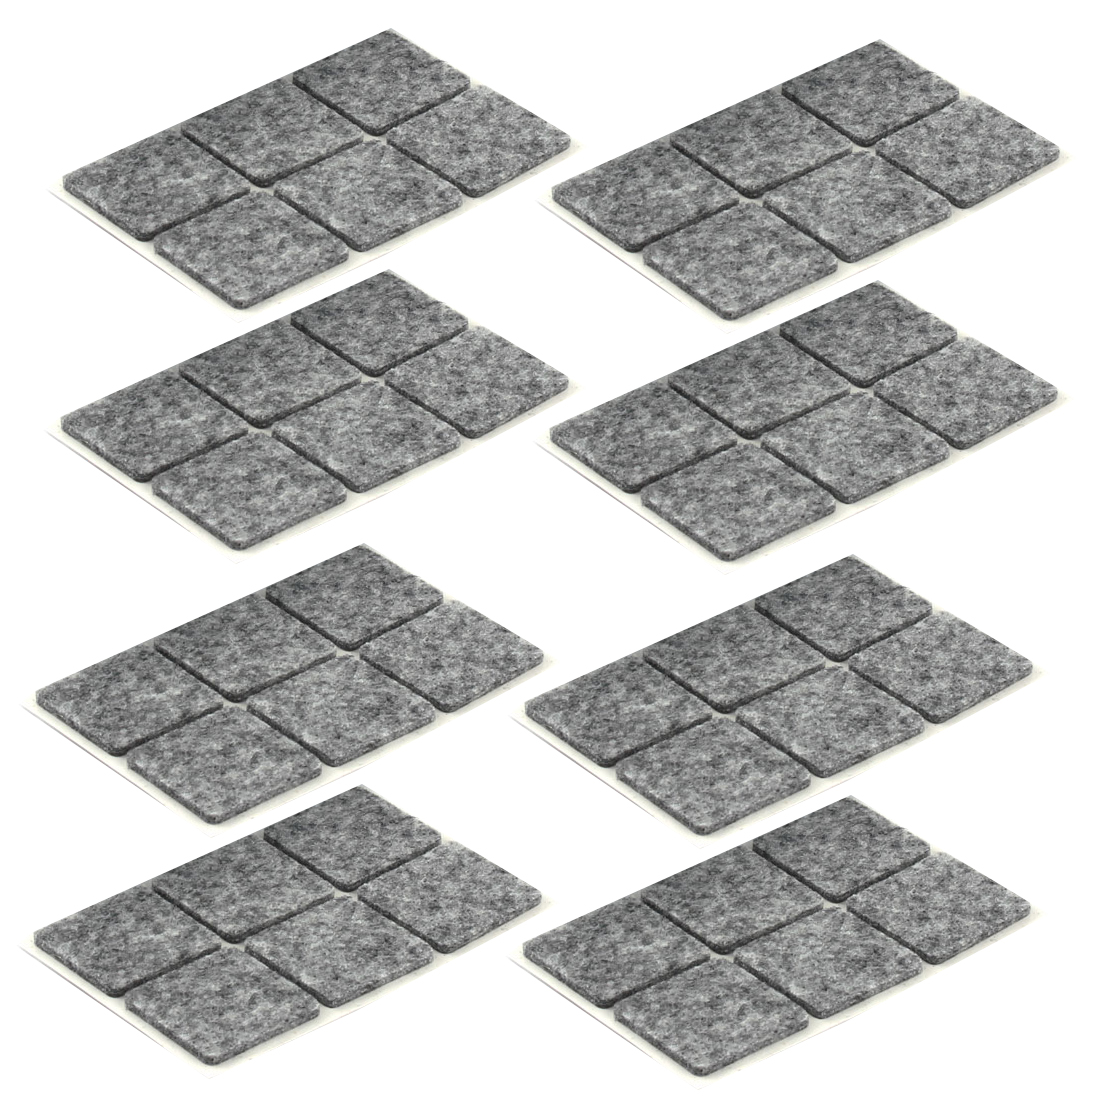 Table Chair Legs Square Anti Slip Furniture Felt Pads Covers Protector Gray 30 x 30mm 48pcs